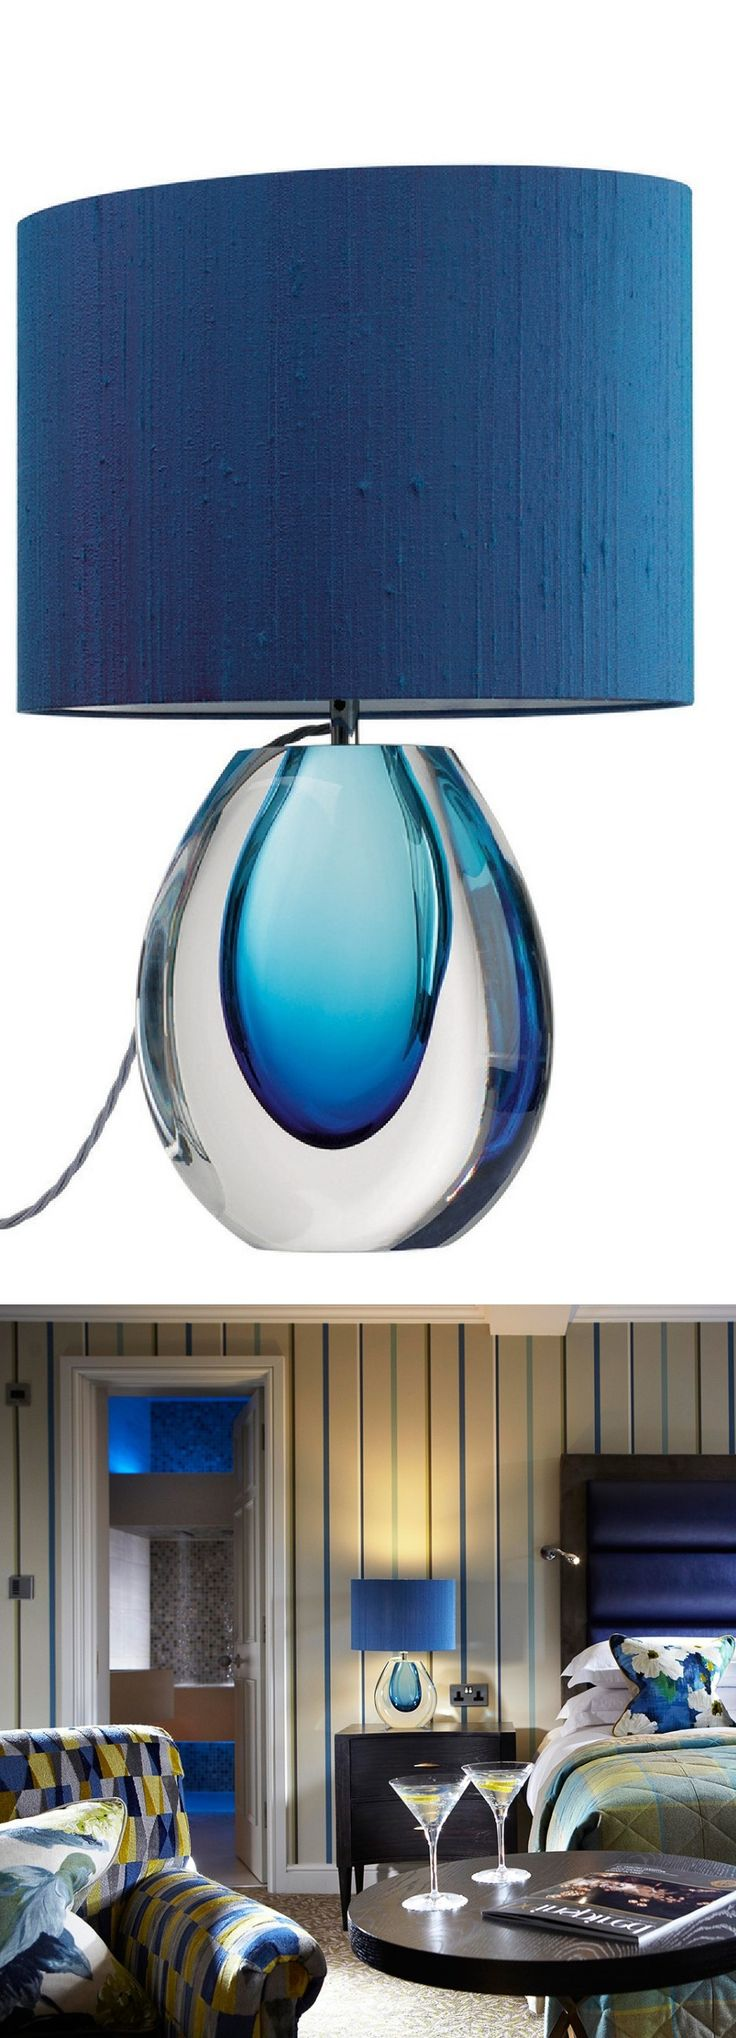 use lighting lampu hotel search hollywood best box manufacturers images beautiful on lamps lamp com suppliers site term instyledecor inspirations floor pinterest instyle for entering design more light decor our